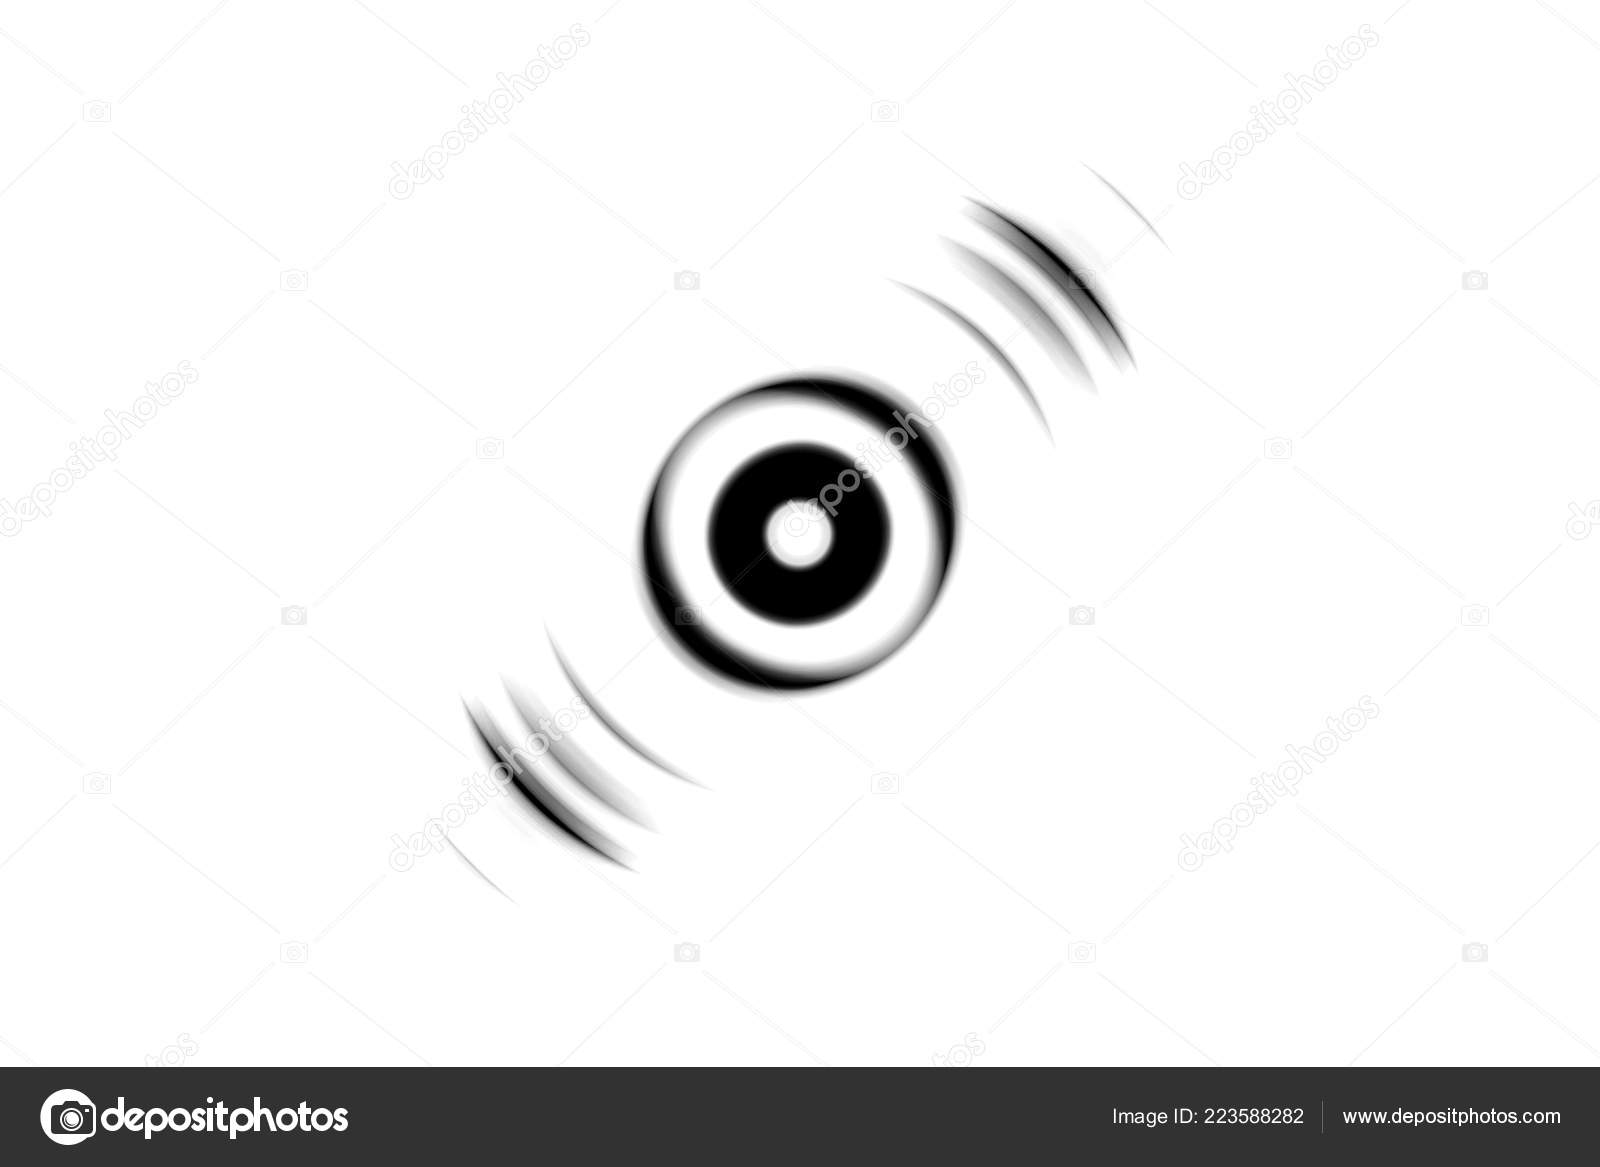 Abstract black and white eye effect with sound waves oscillating background photo by imouu007ggamil com